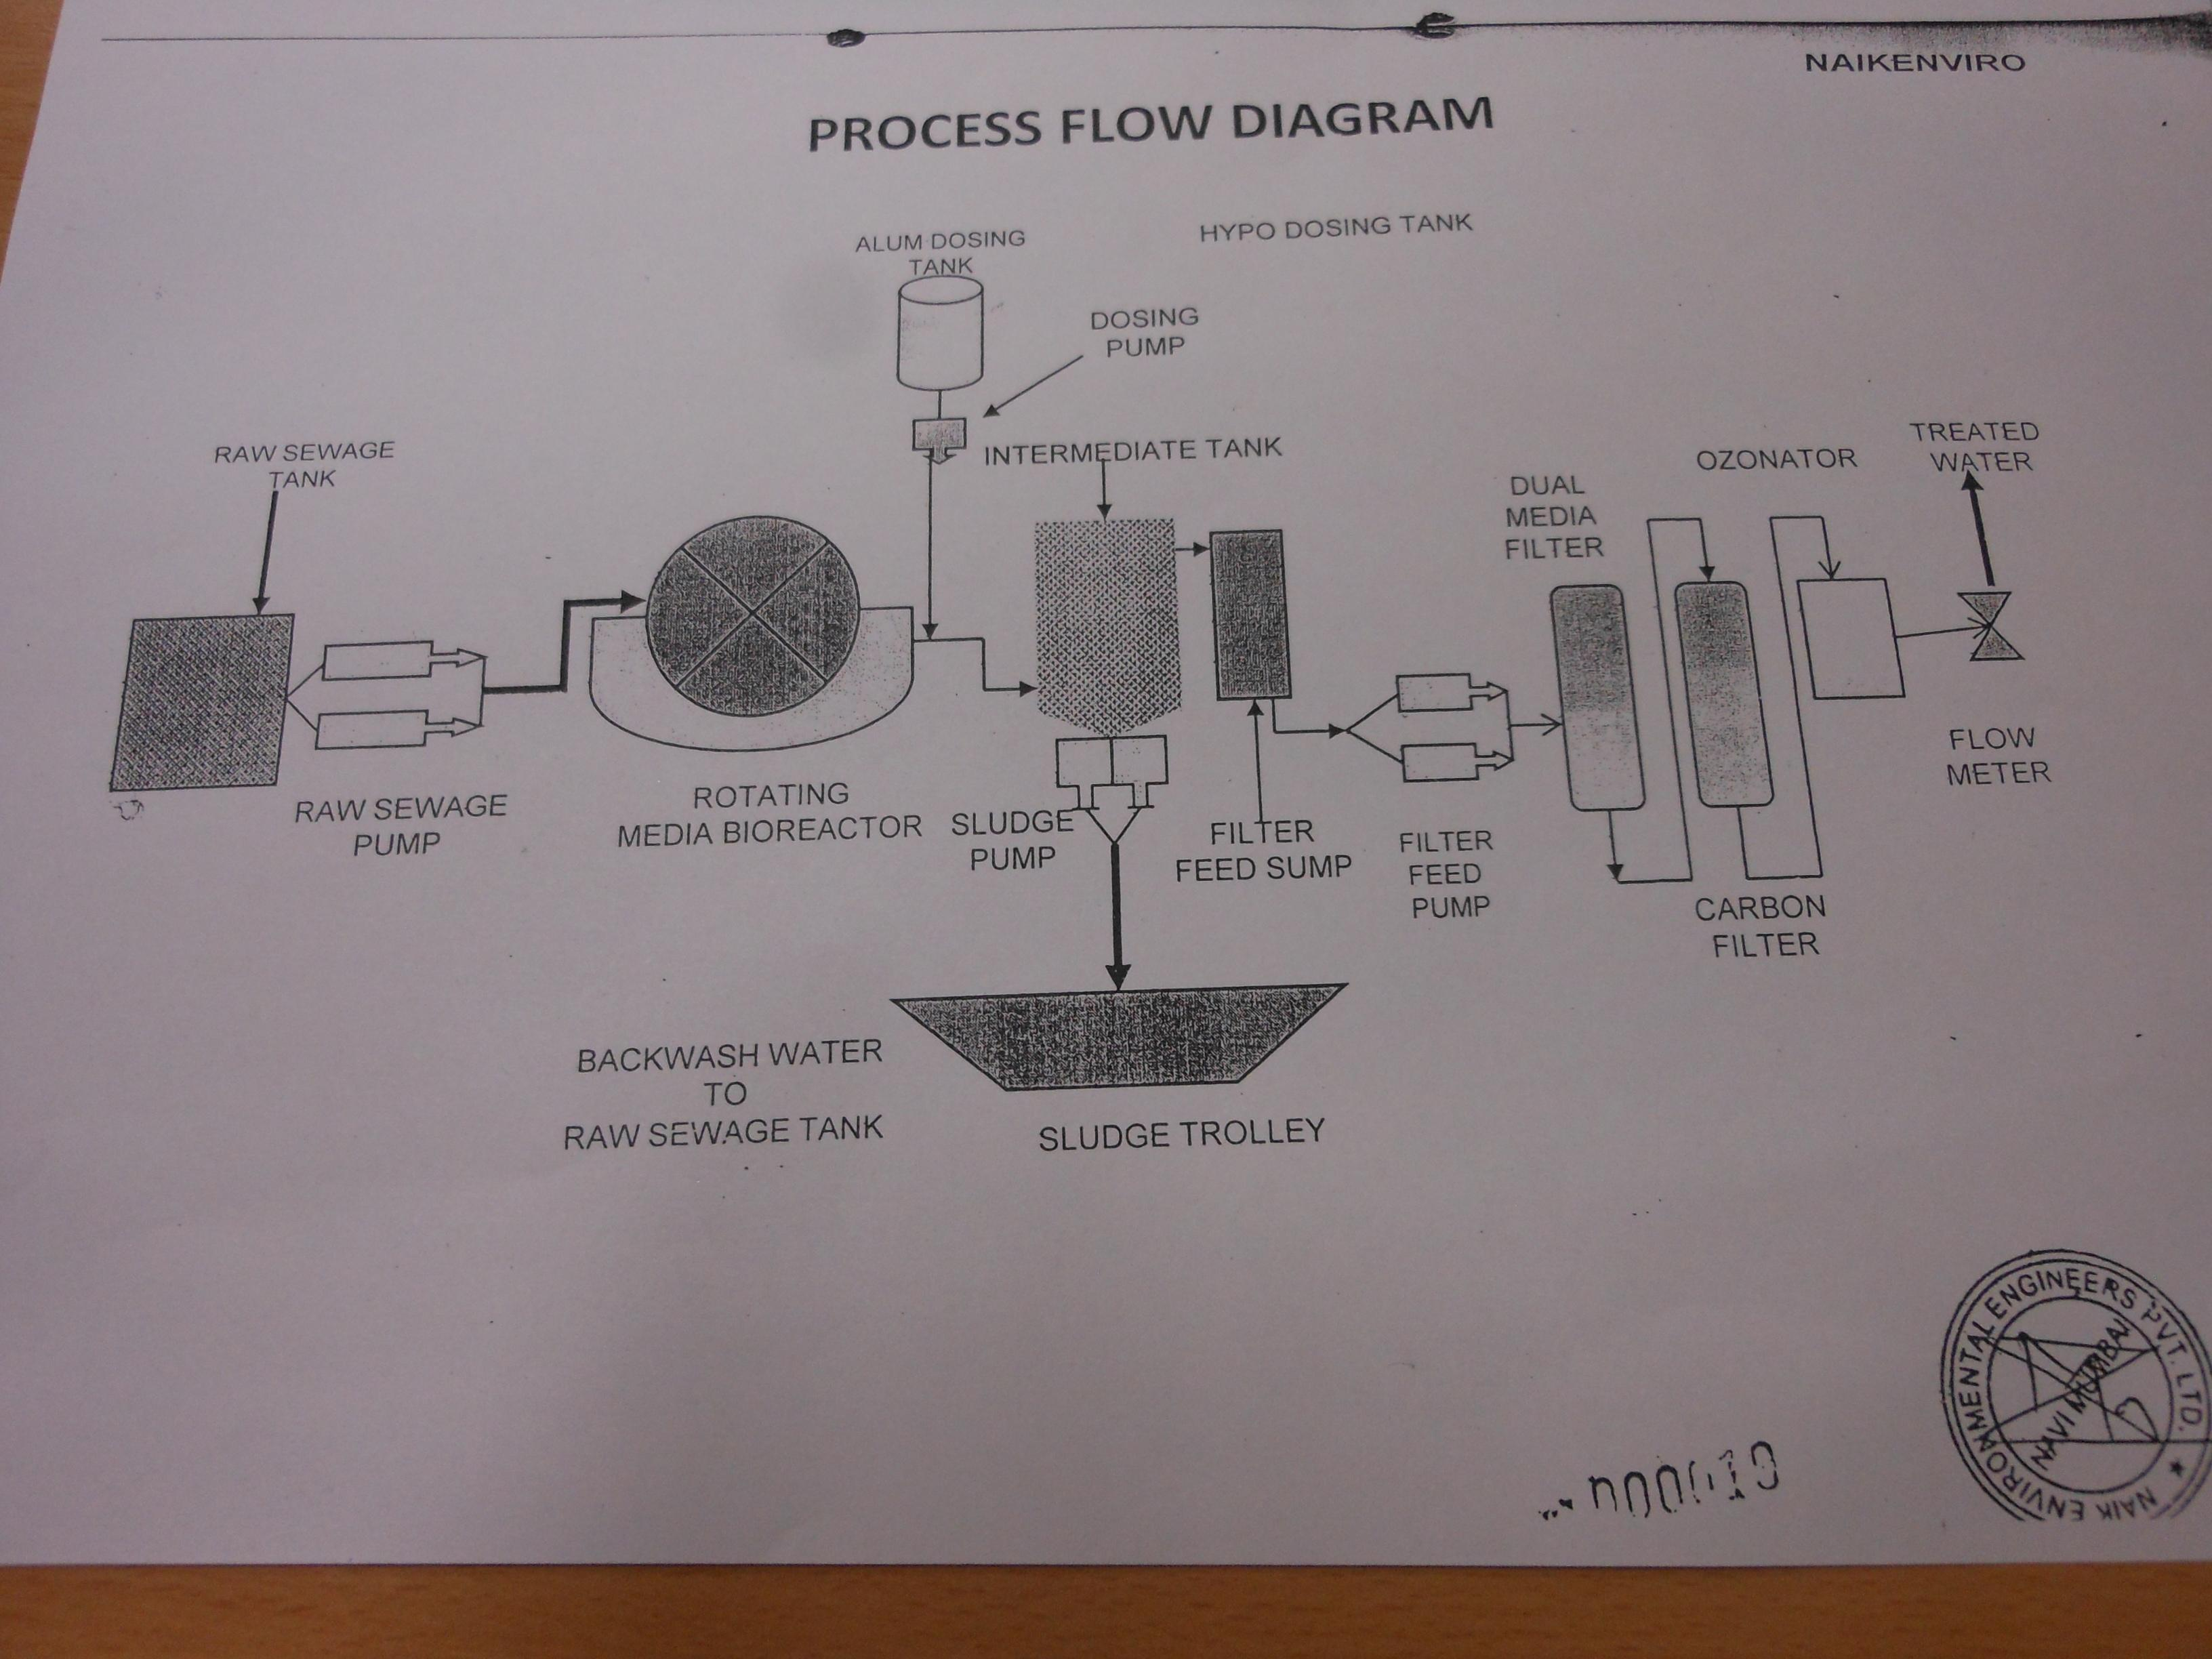 Hot Air Oven Diagram Fig 2 Process Flow Diagram Of Stp